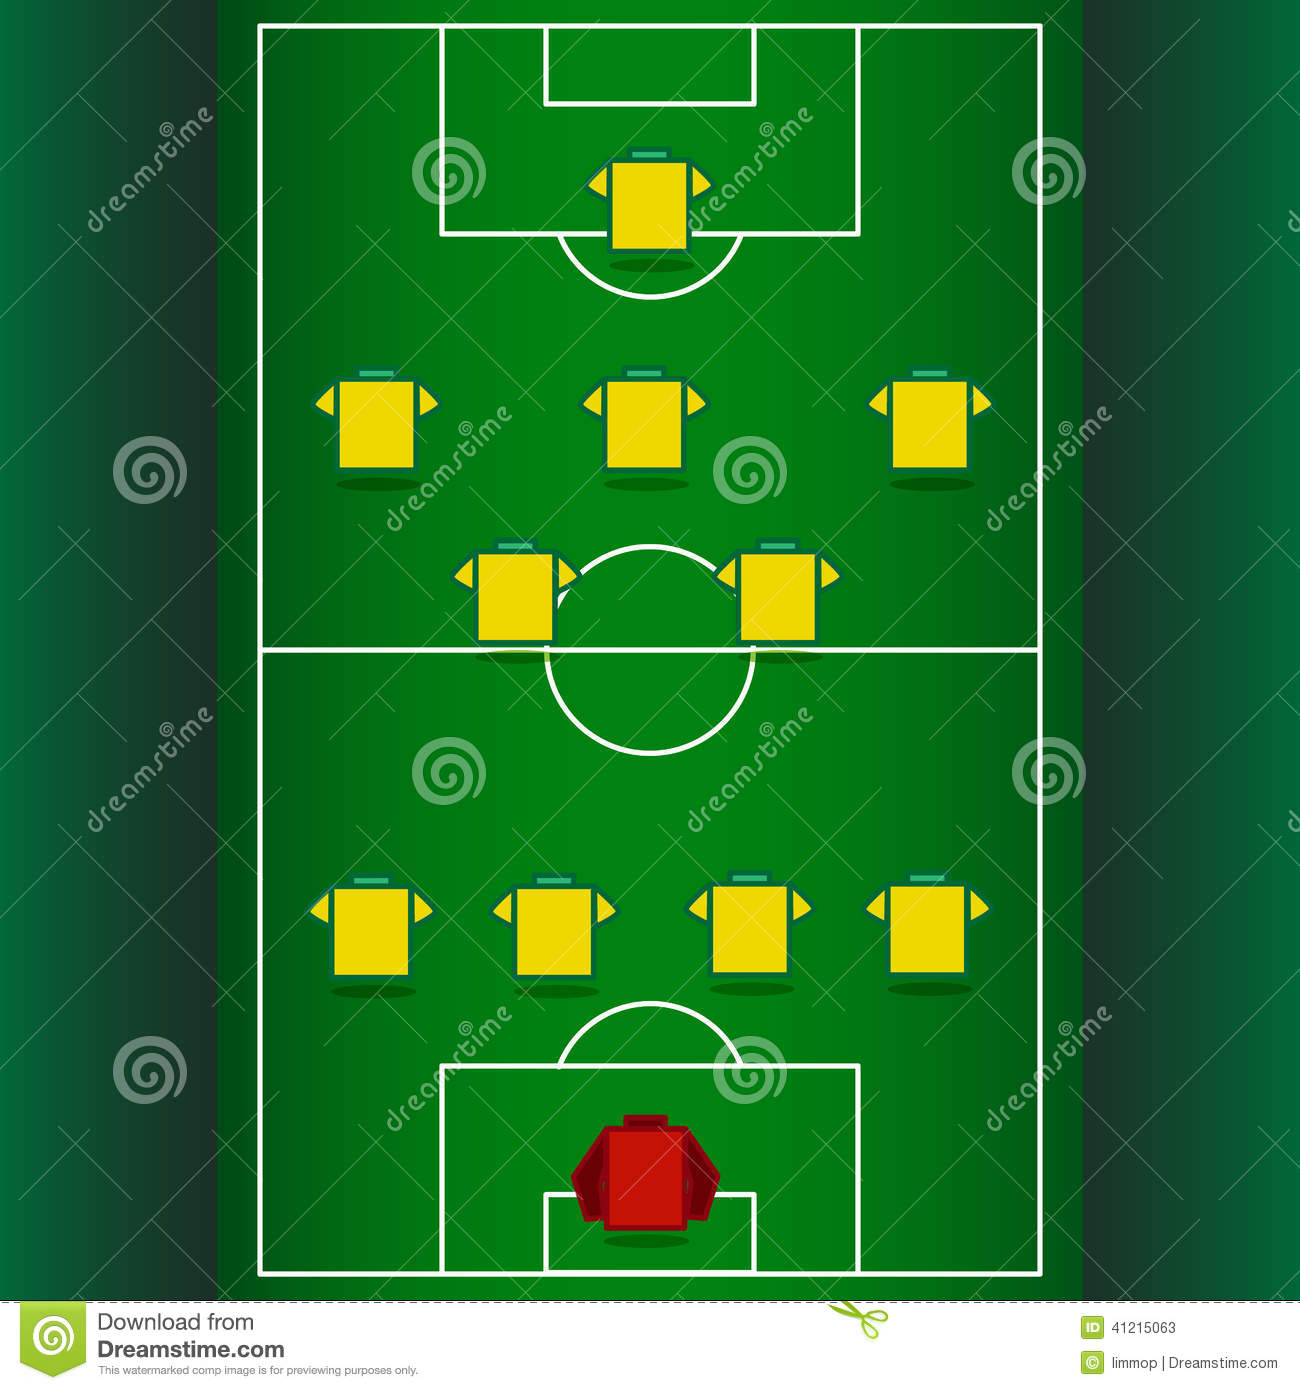 Football Tactics And Strategy Stock Vector Illustration Of